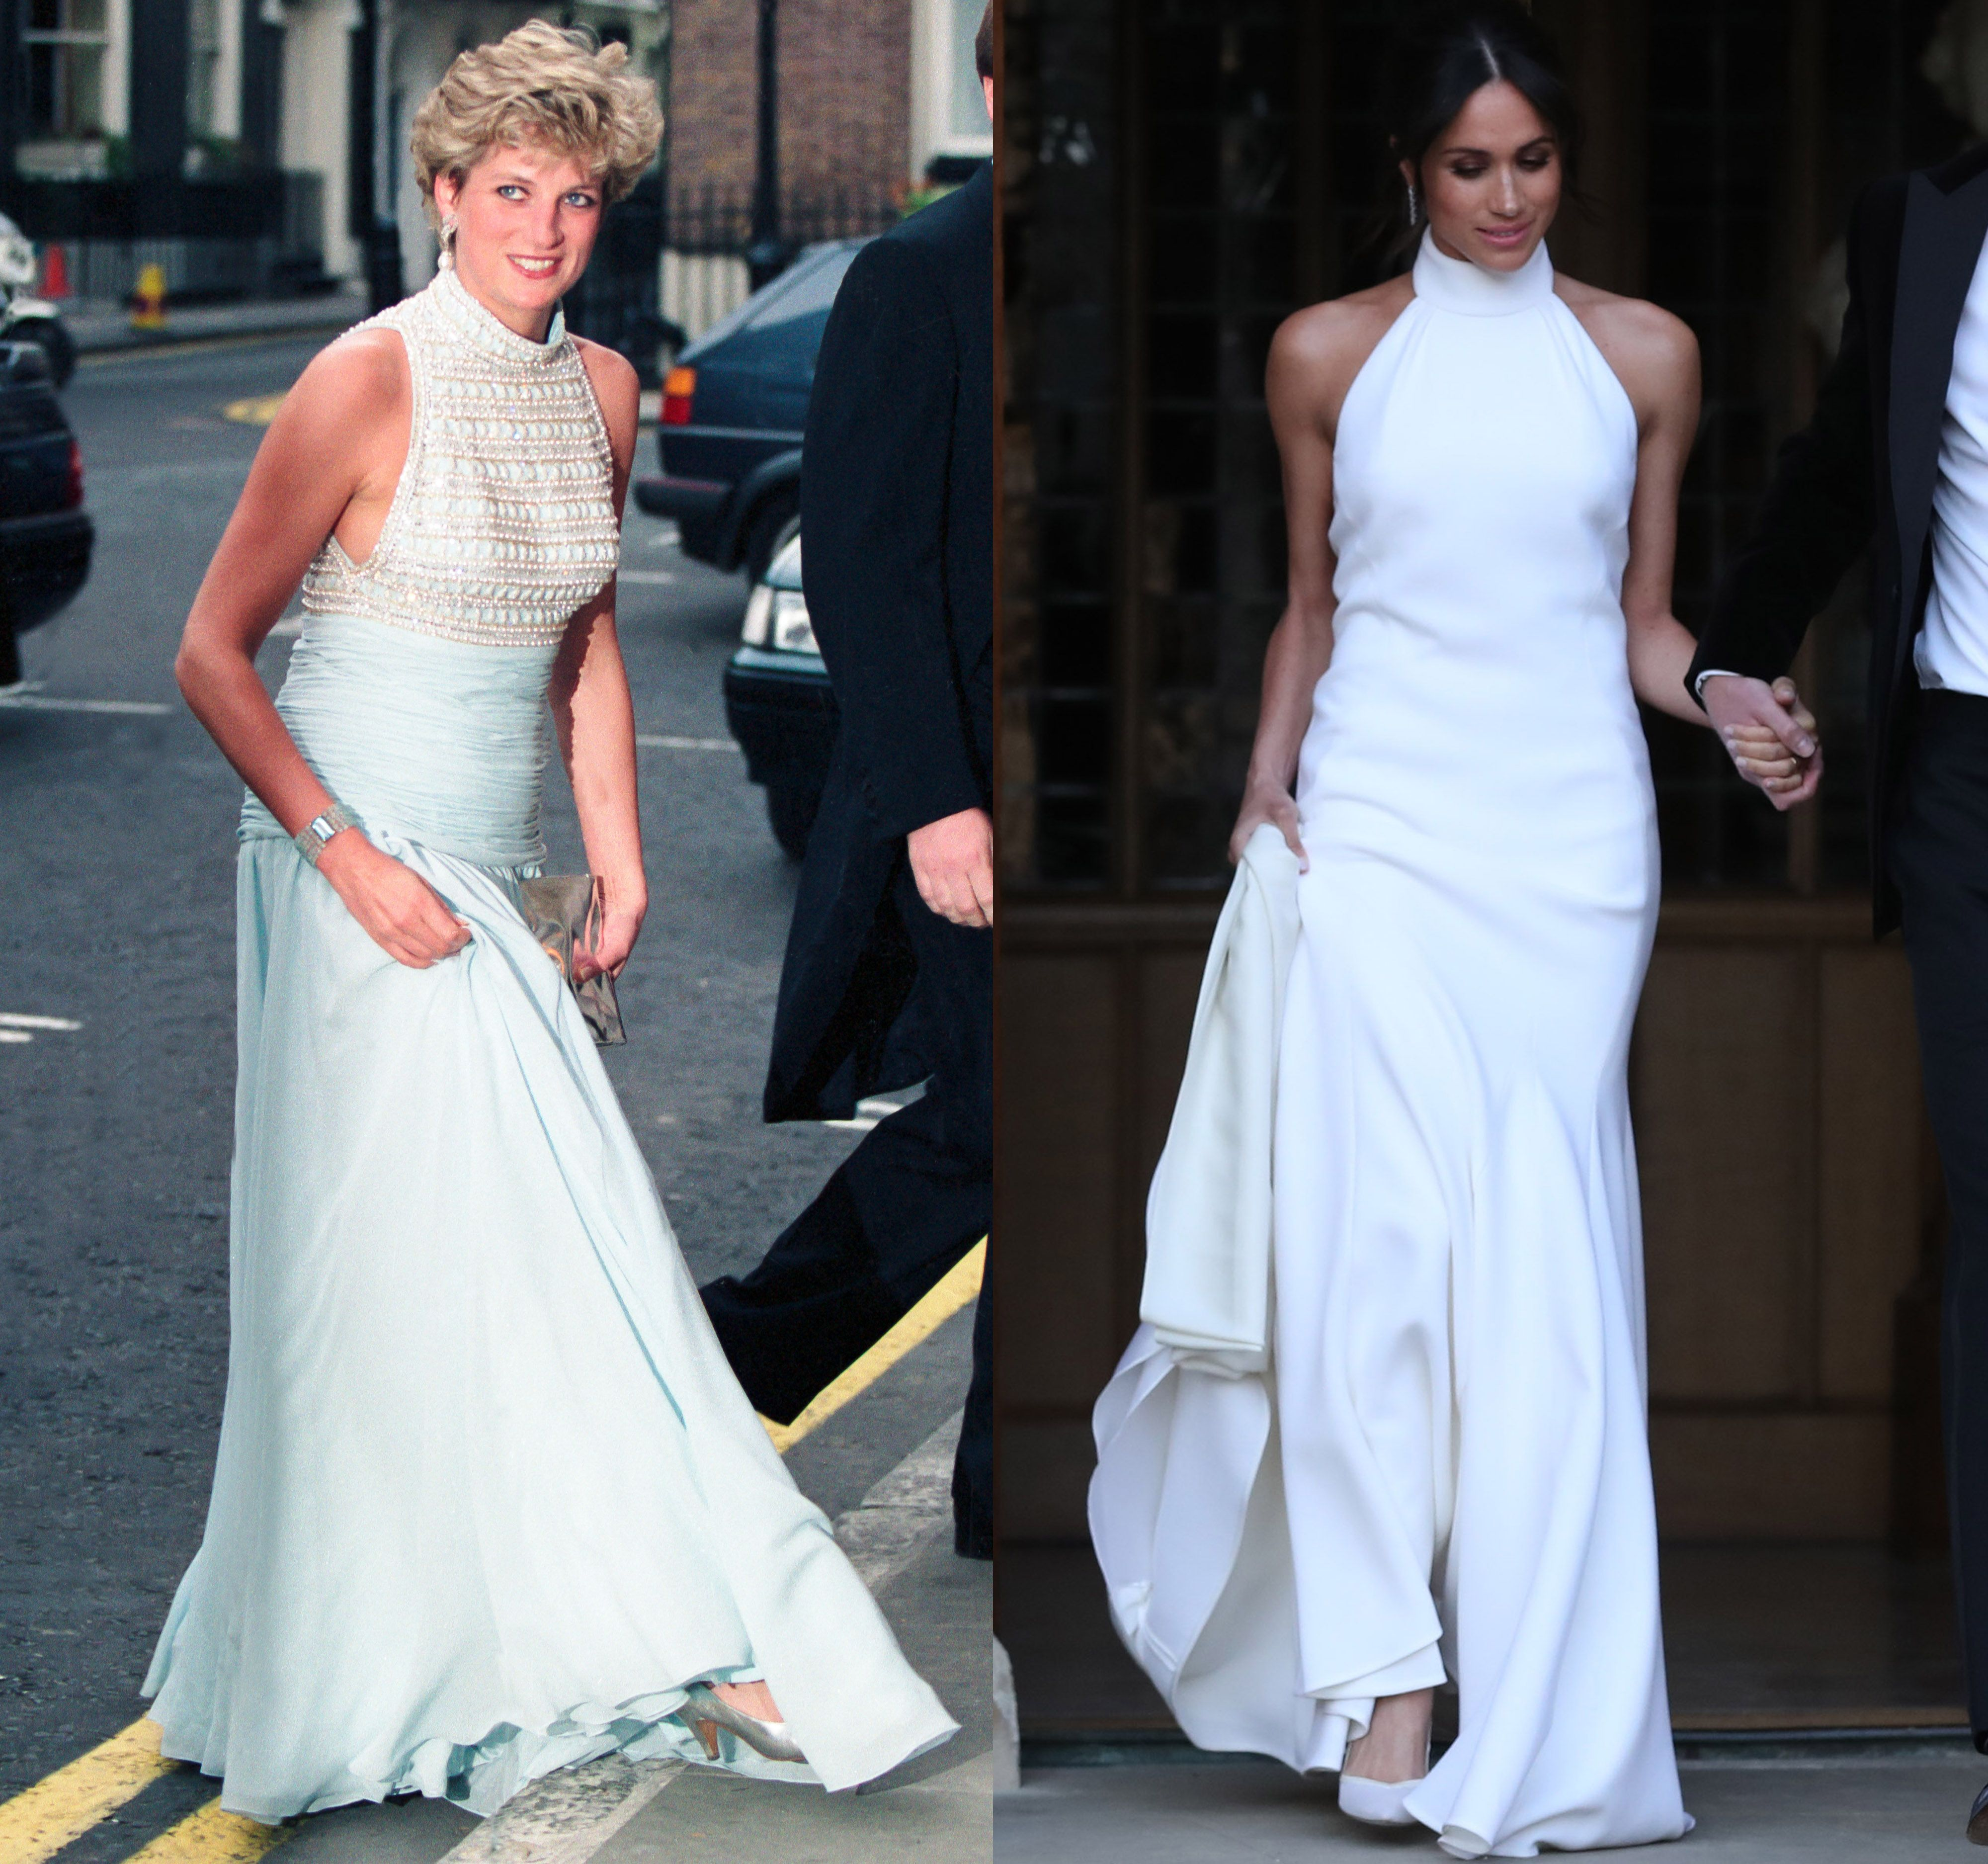 Meghan Markle Heads to Reception in Second Royal Wedding ...